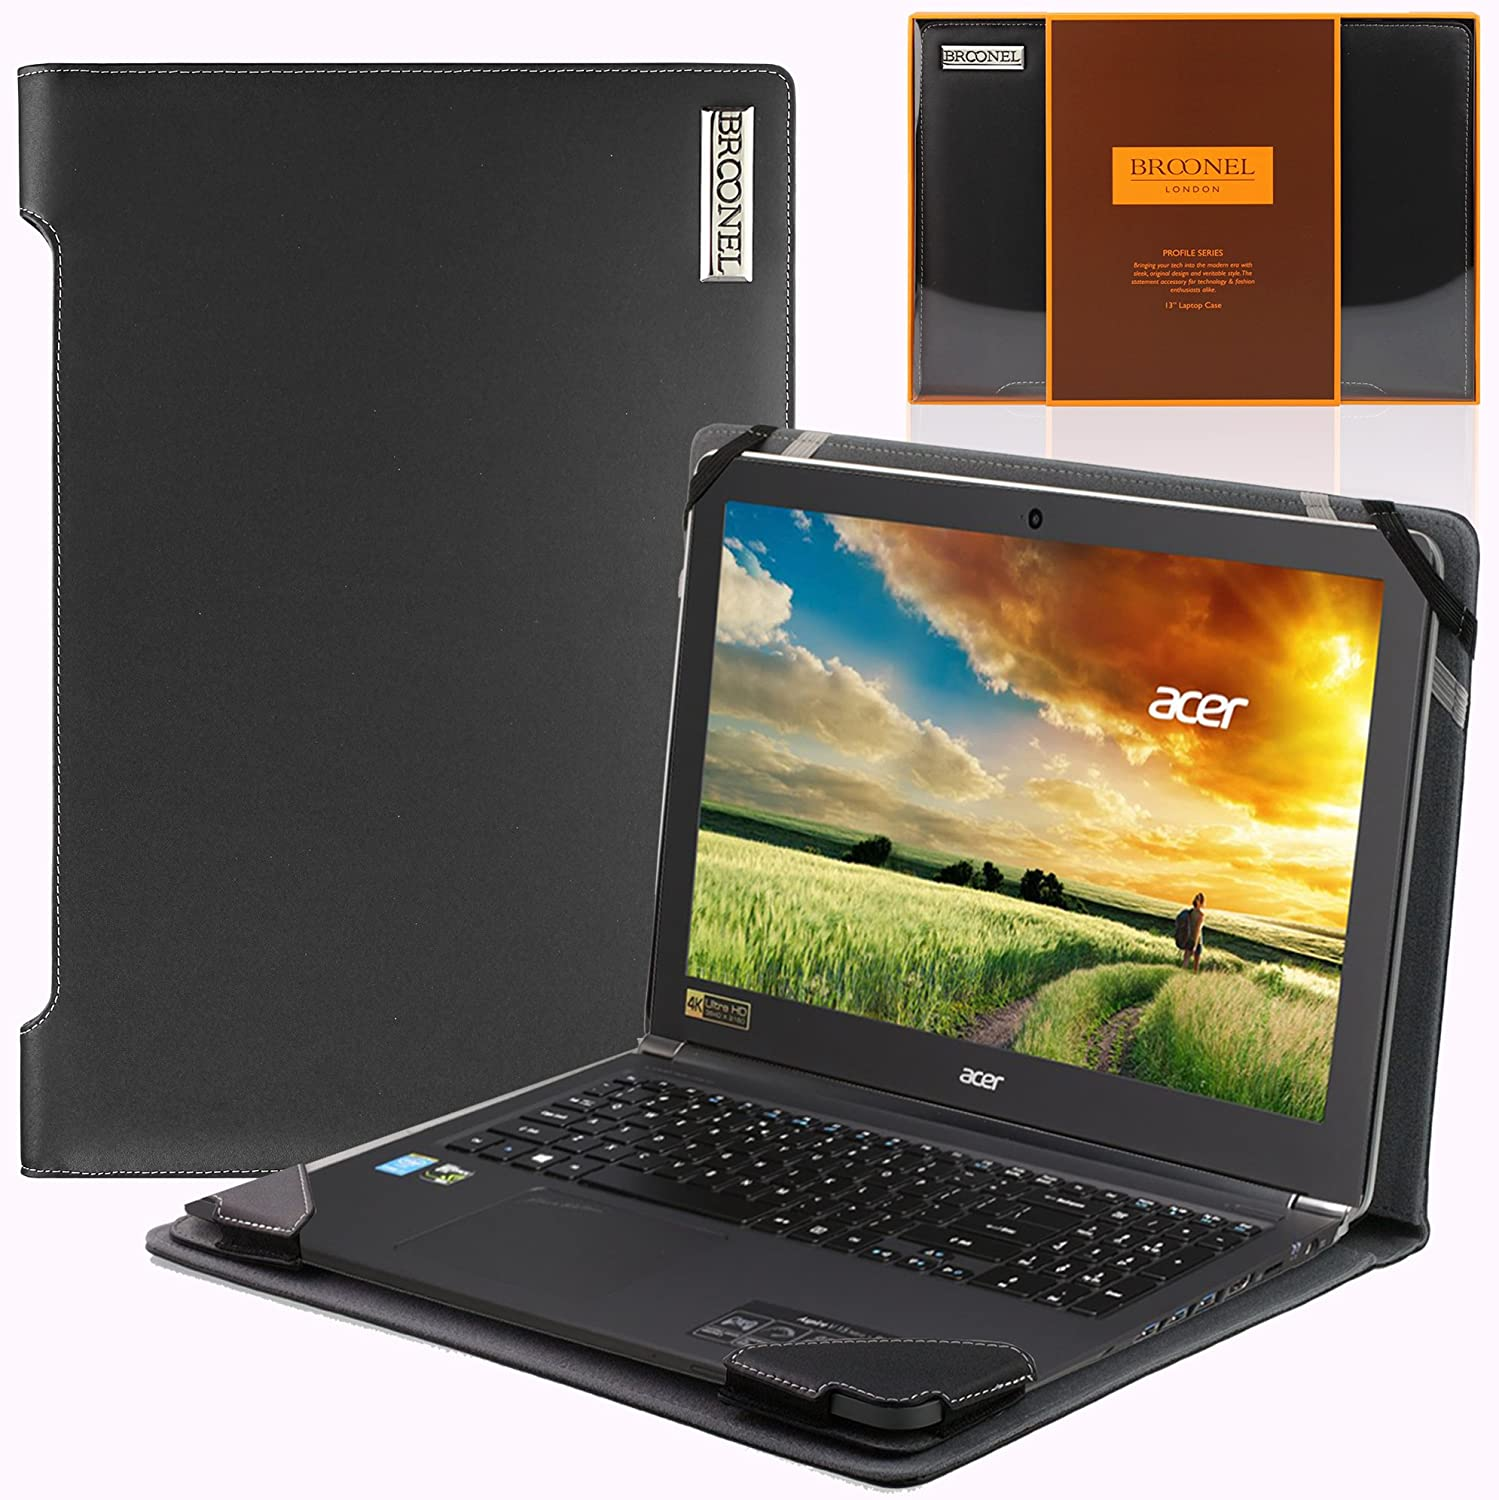 Broonel London - Profile Series - Black Vegan Leather Luxury Laptop Case Cover Sleeve Compatible with The Acer Aspire V15 Nitro & Acer Aspire V1 Nitro Black Edition